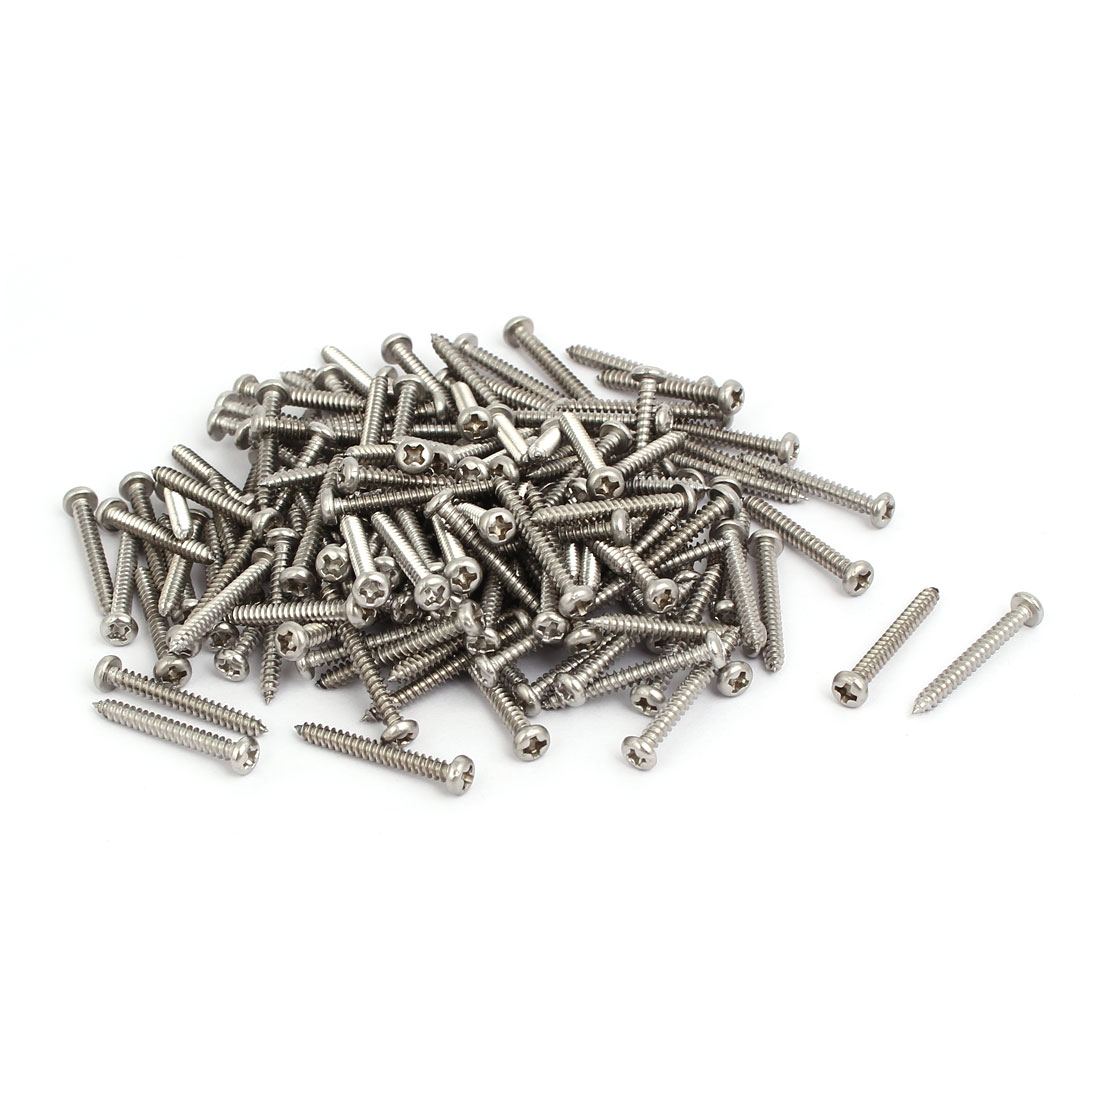 M3x25mm 304 Stainless Steel Phillips Round Pan Head Self Tapping Screws 150pcs